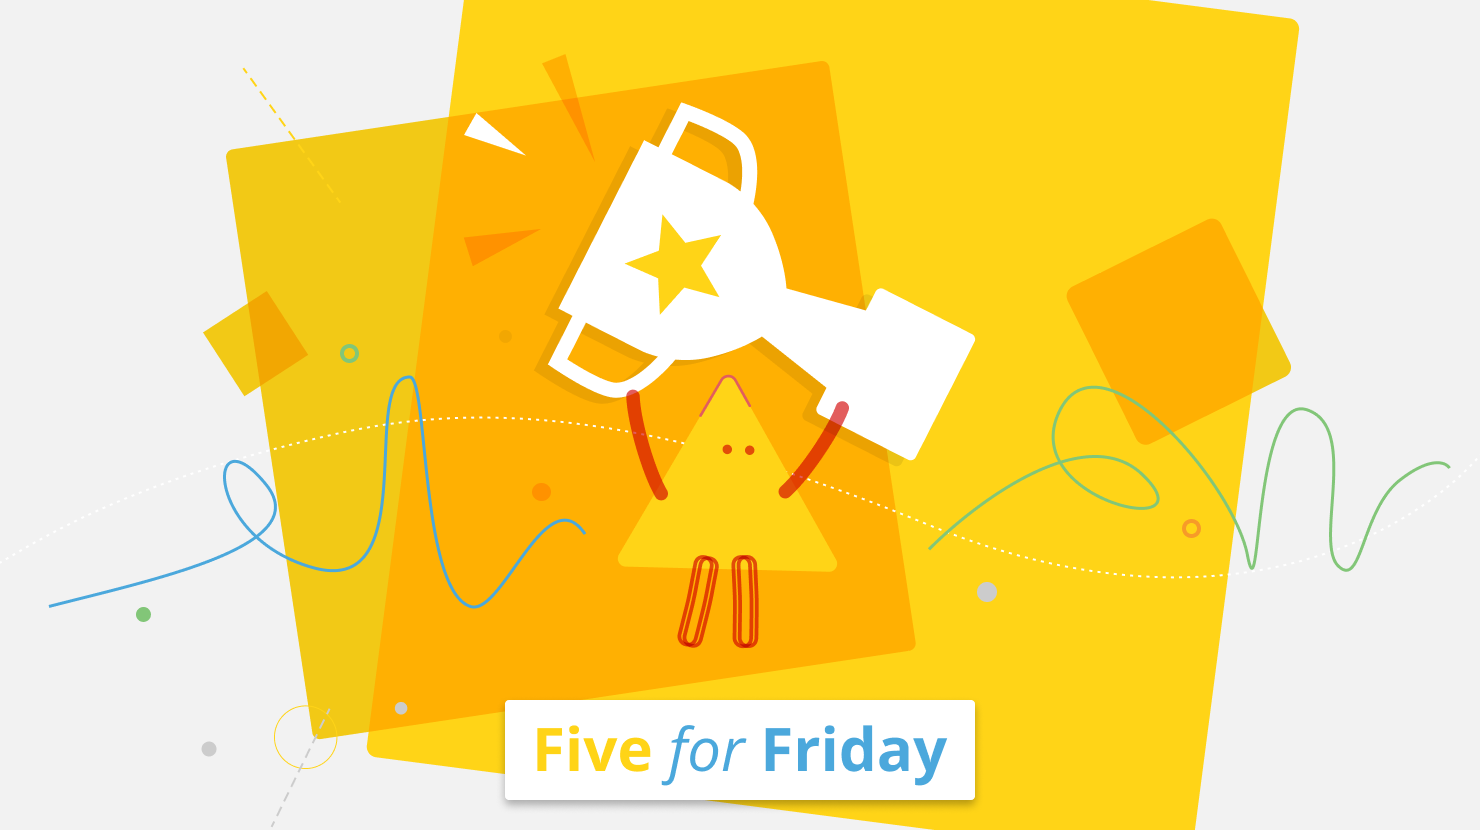 Five for Friday: Culture champions